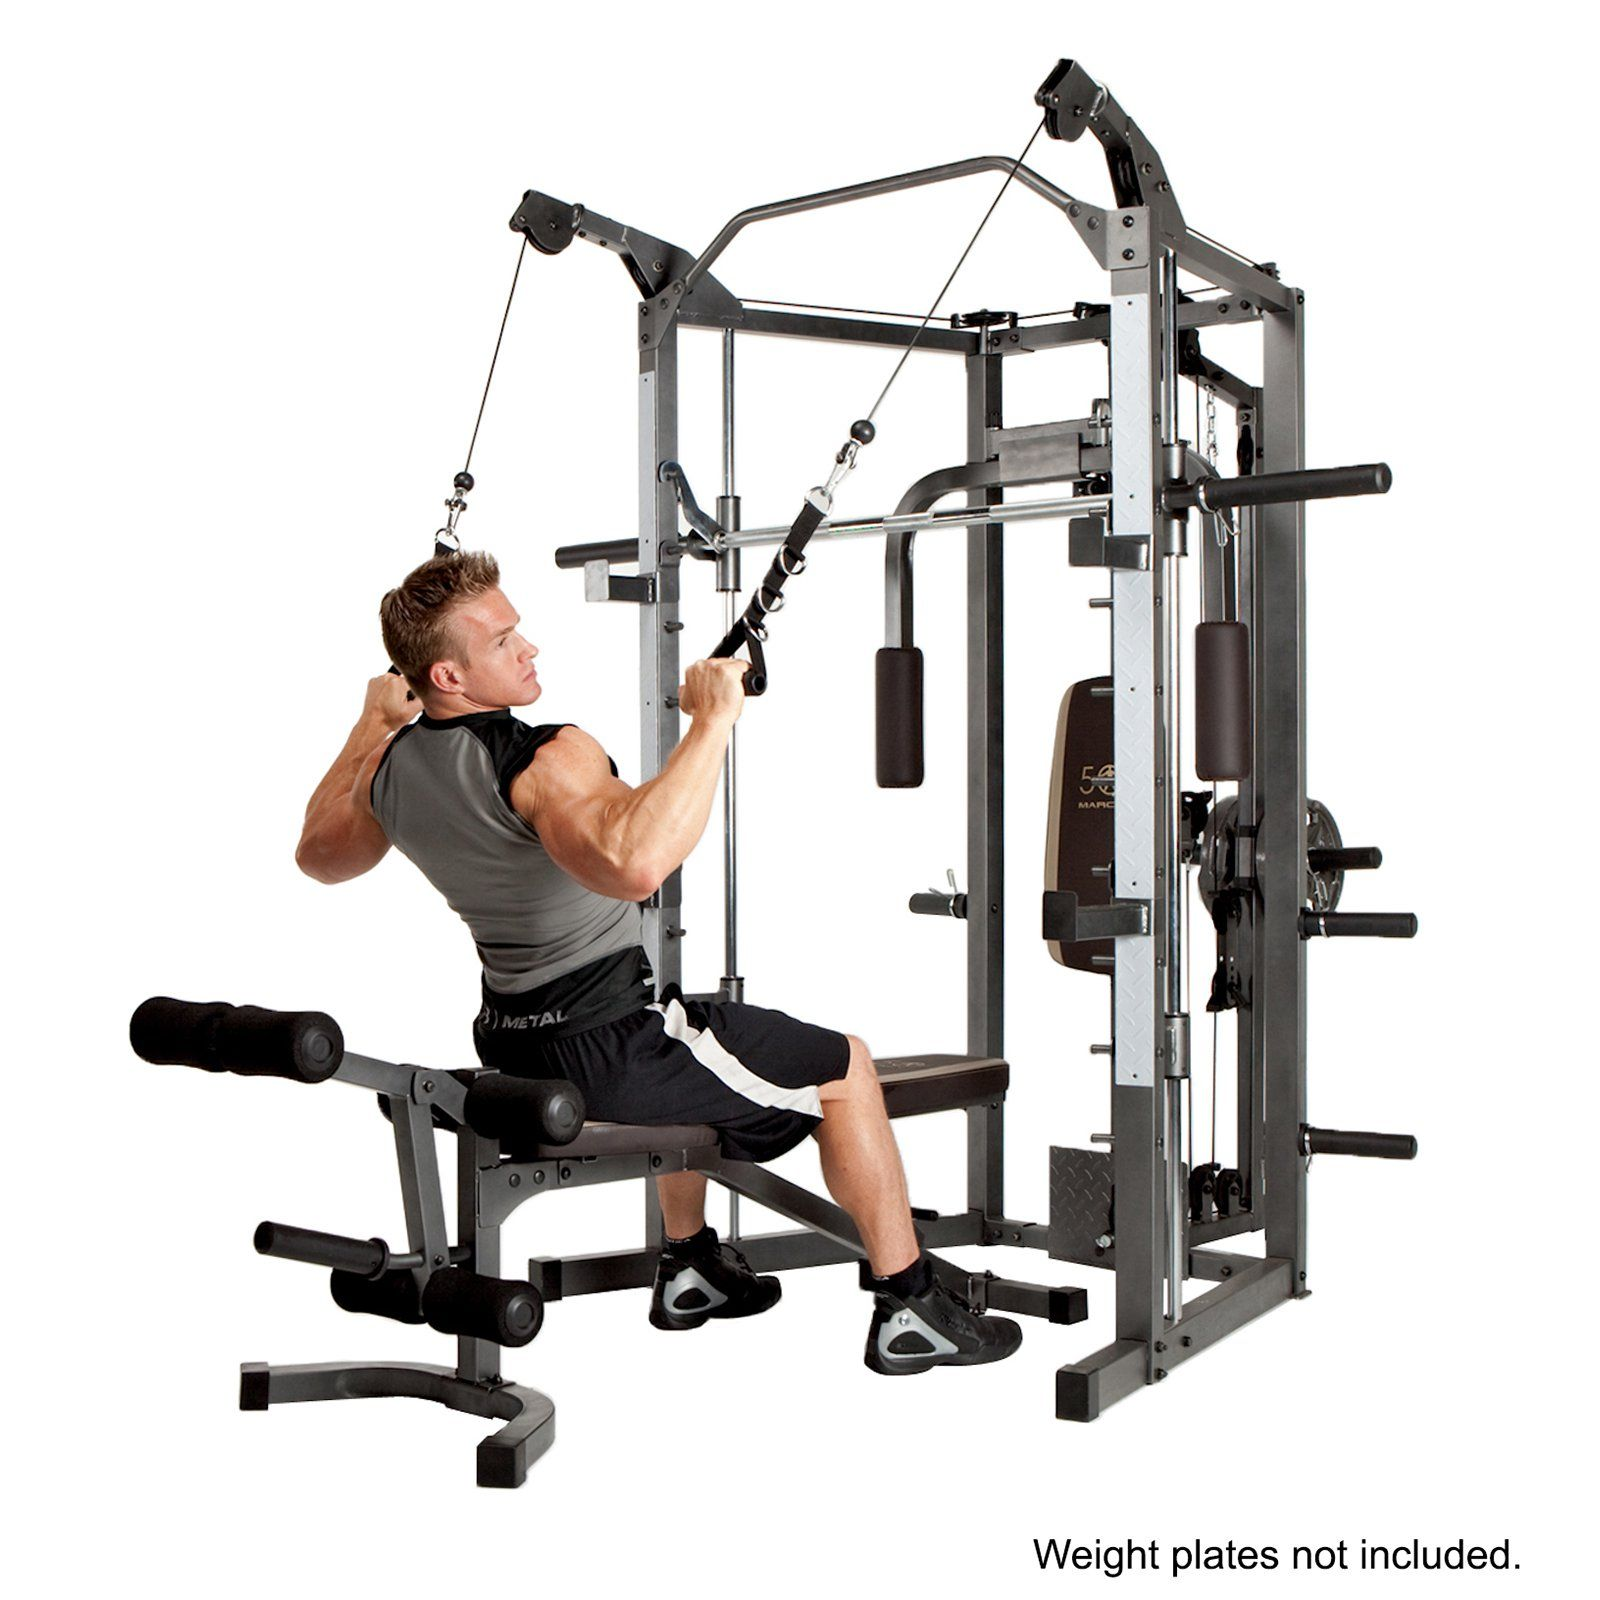 Marcy Combo Smith Machine - SM4008 | Products | Pinterest | Weight ...